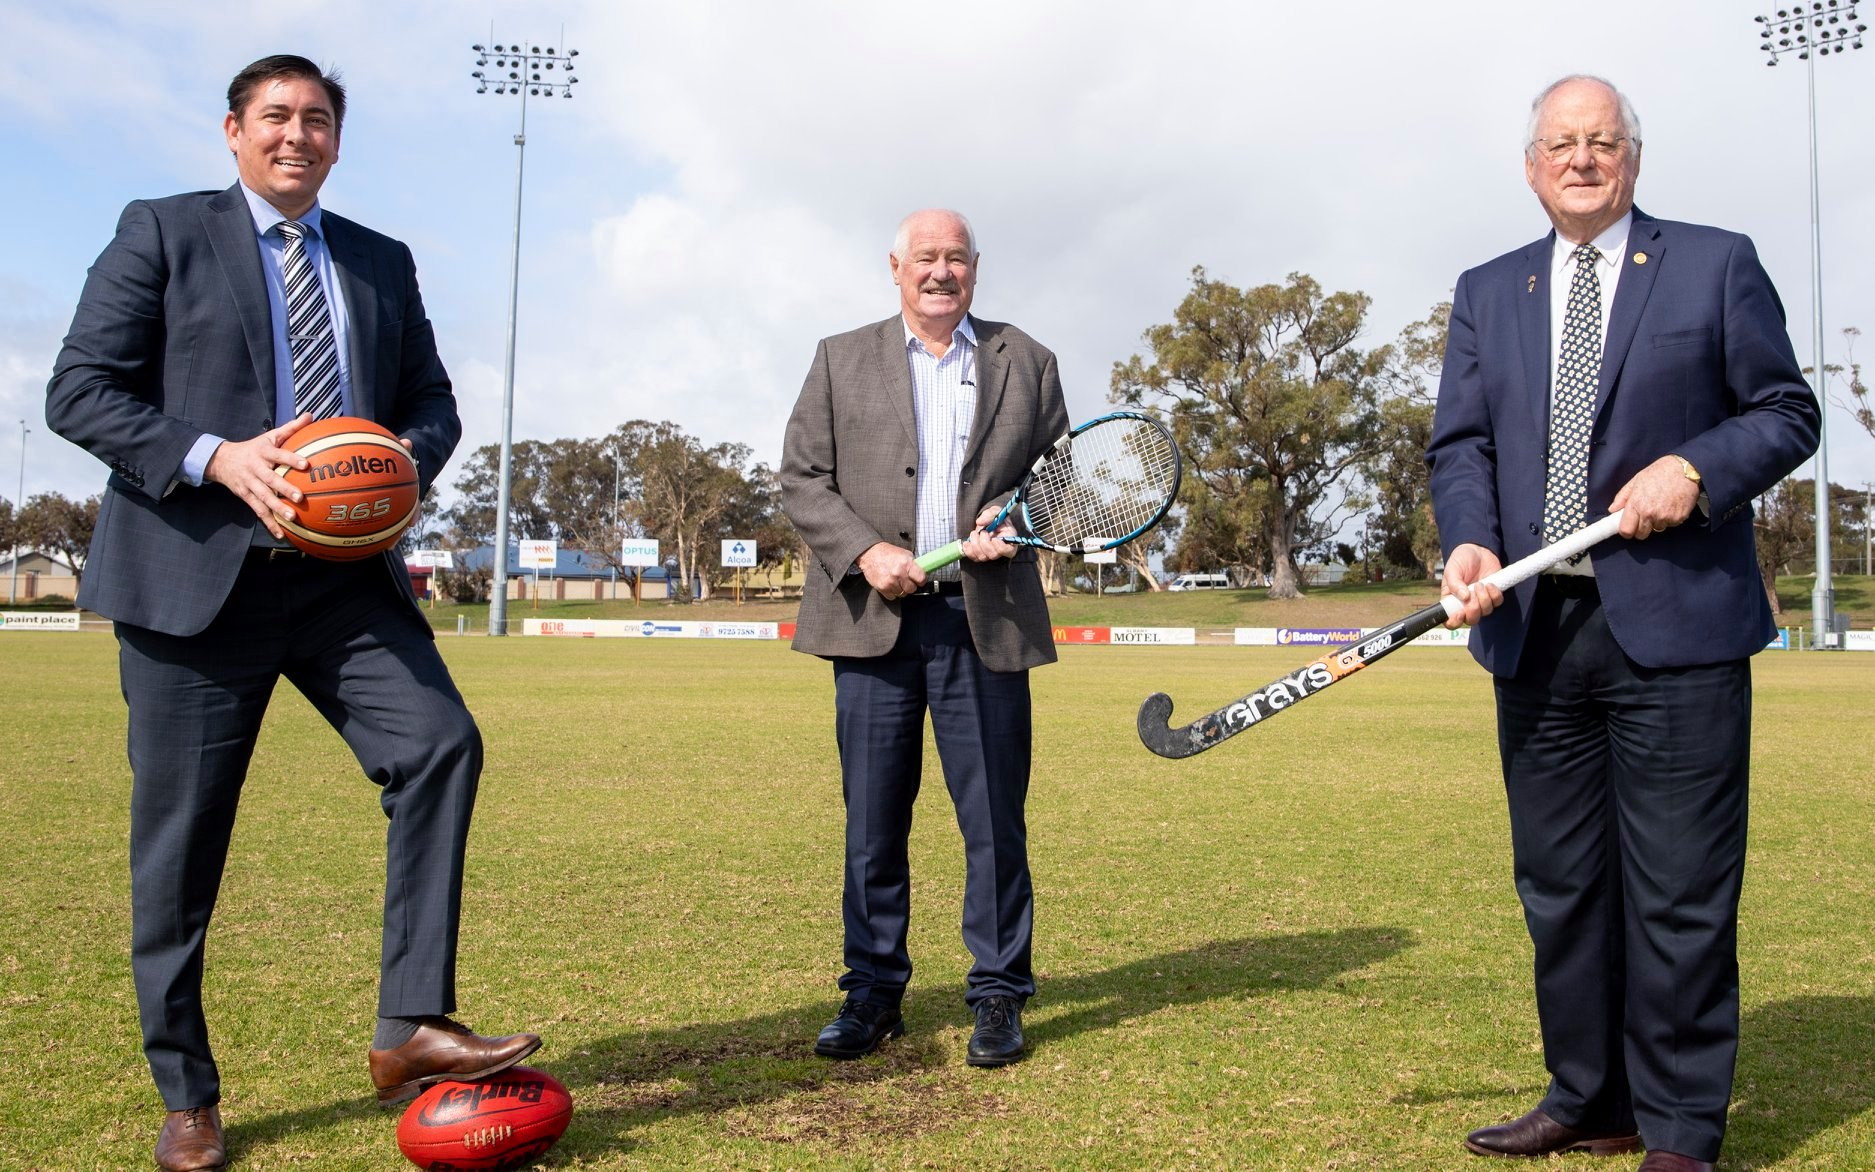 Minister Mick Murray, Shire of Donnybrook Balingup CEO and president holding sports equipment on the Donnybrook and Districts Sporting and Recreation Precinct